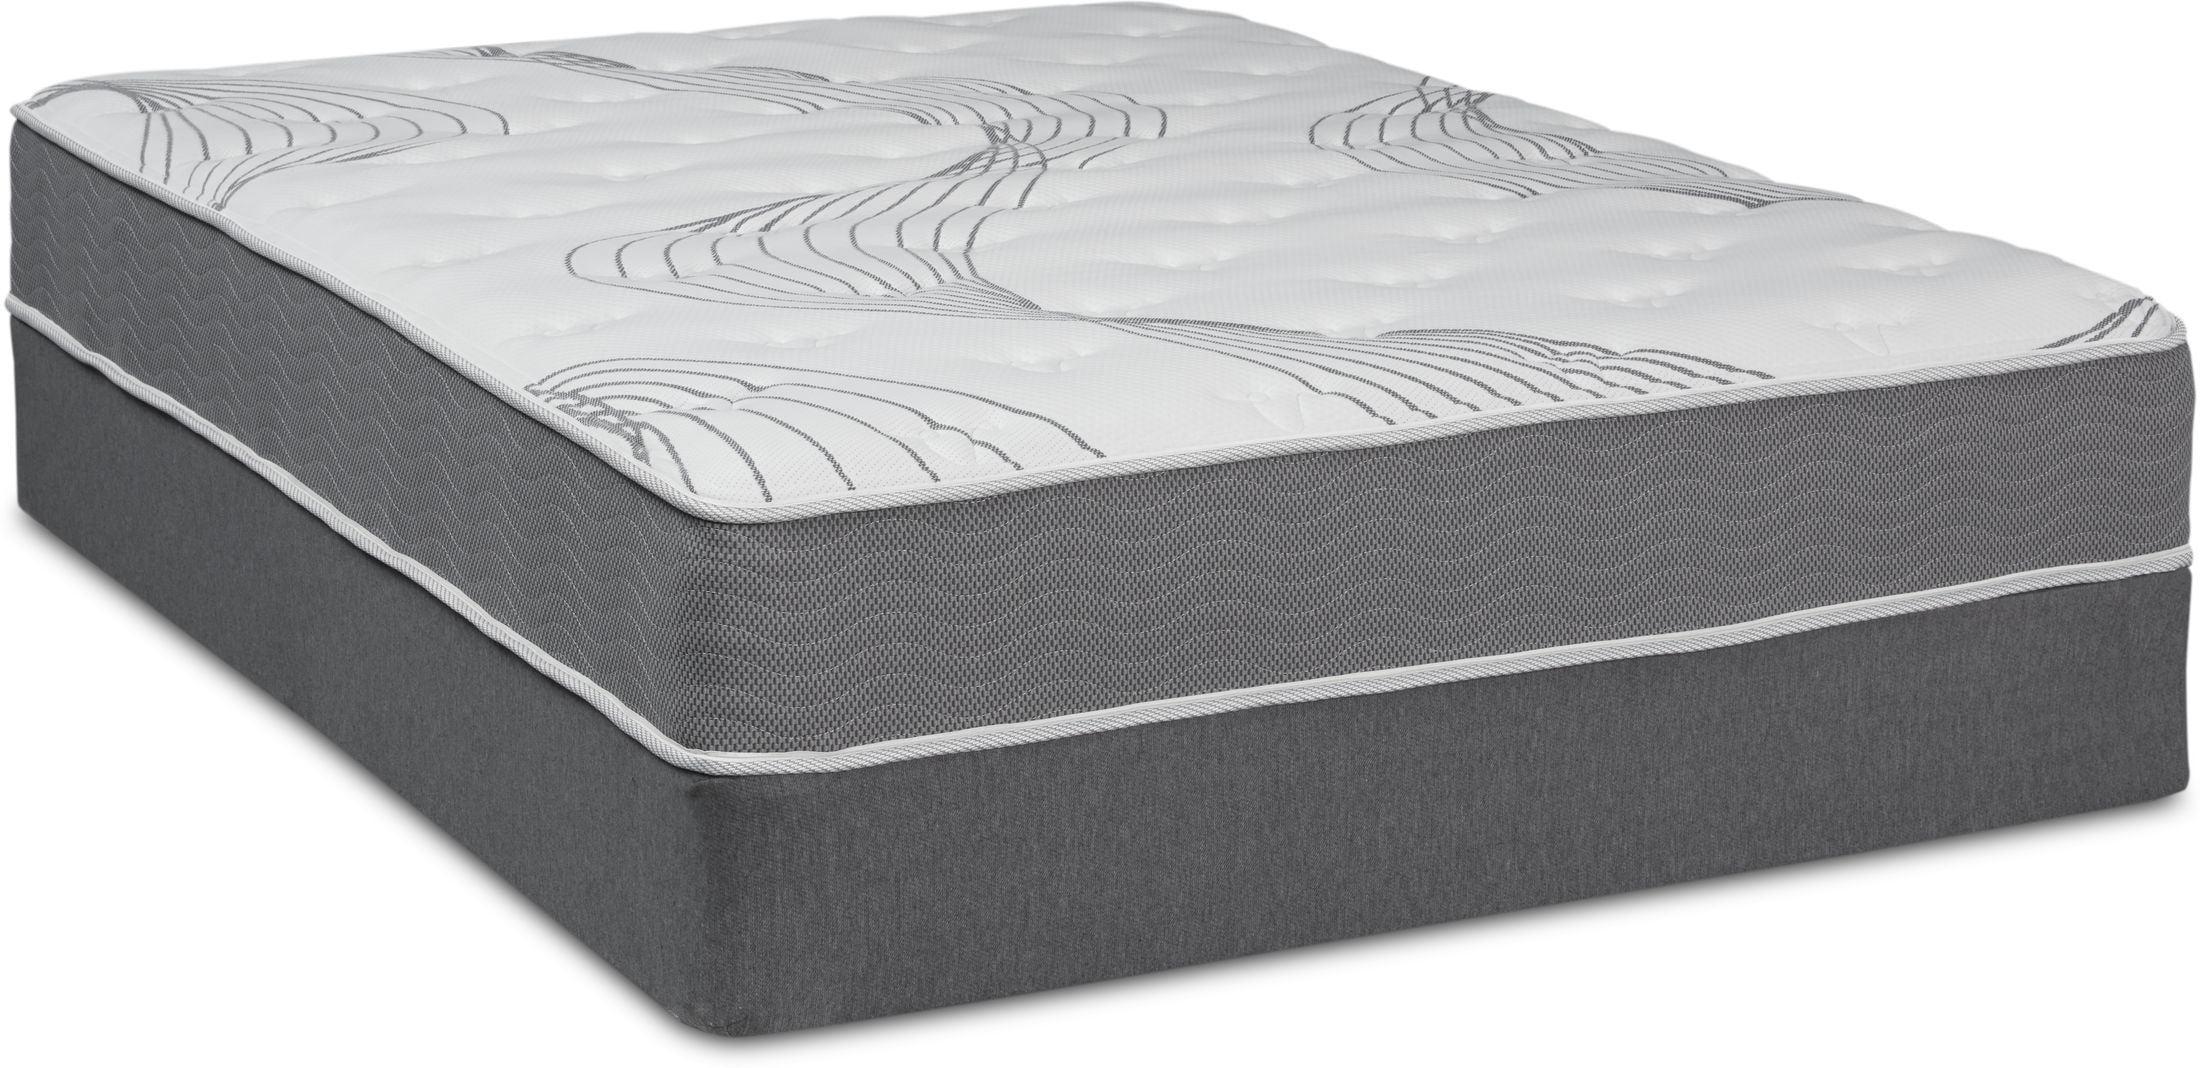 Mattresses and Bedding - Dream–In–A–Box Simple Firm Mattress